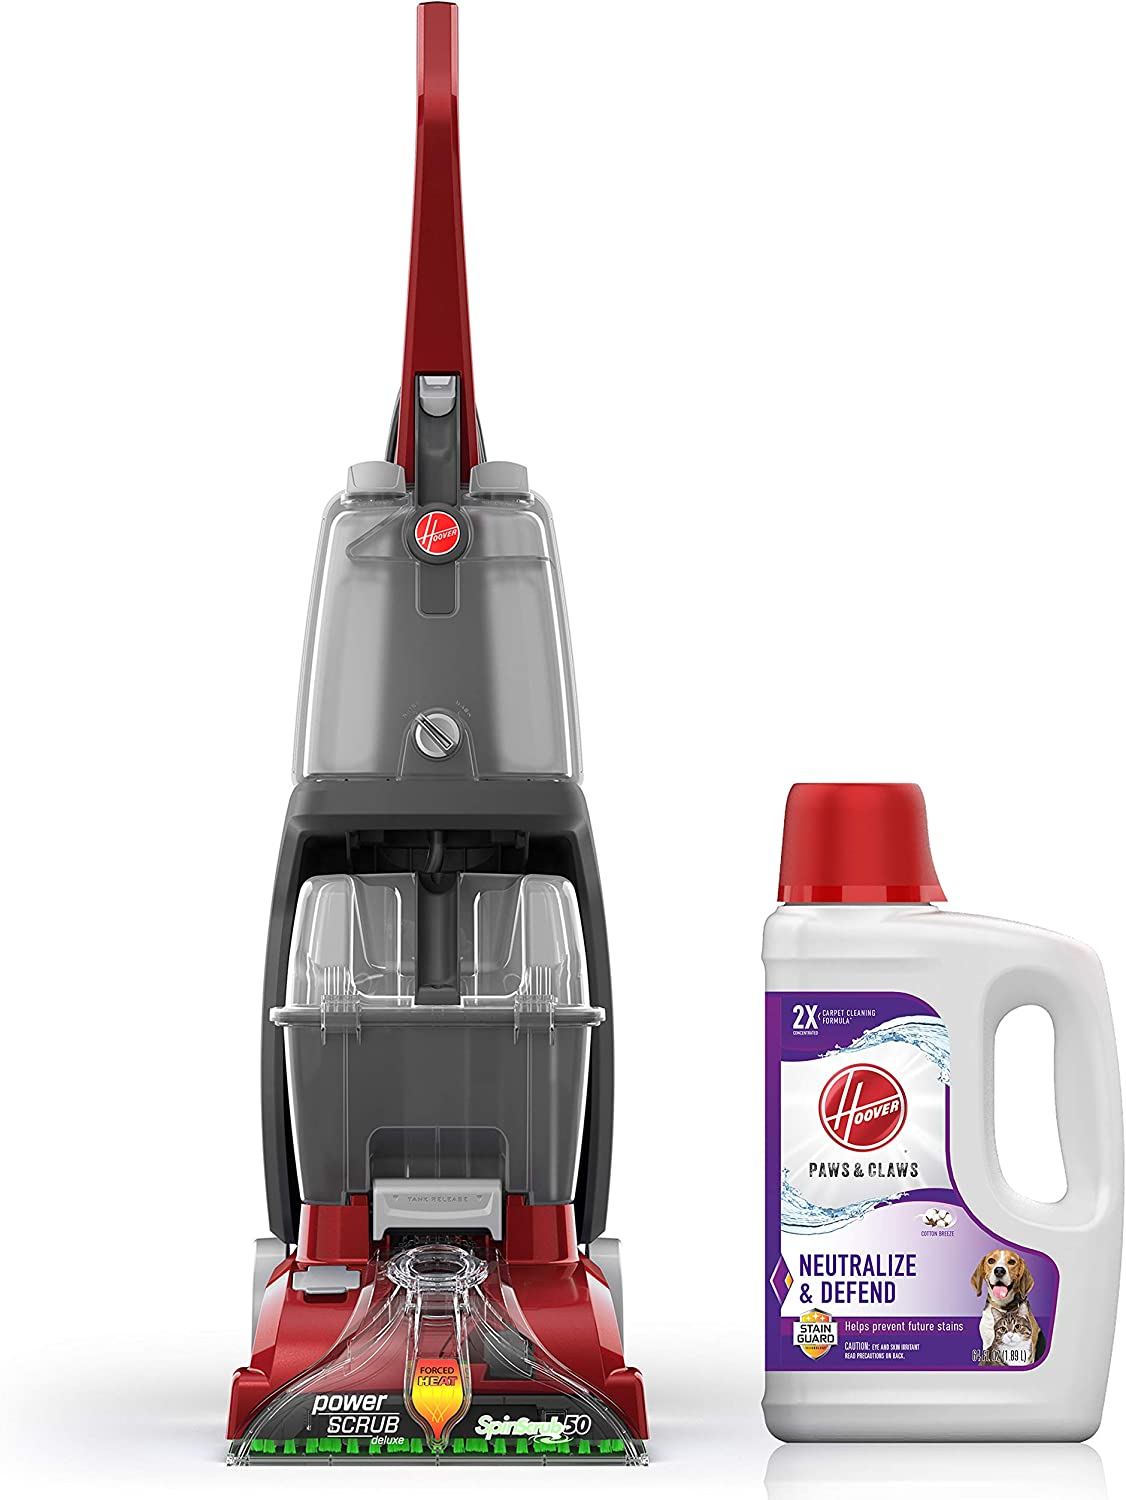 Hoover Power Scrub Deluxe Carpet Washer with Paws & Claws Carpet Cleaning Solution with Stainguard (64 oz), FH50150, AH30925